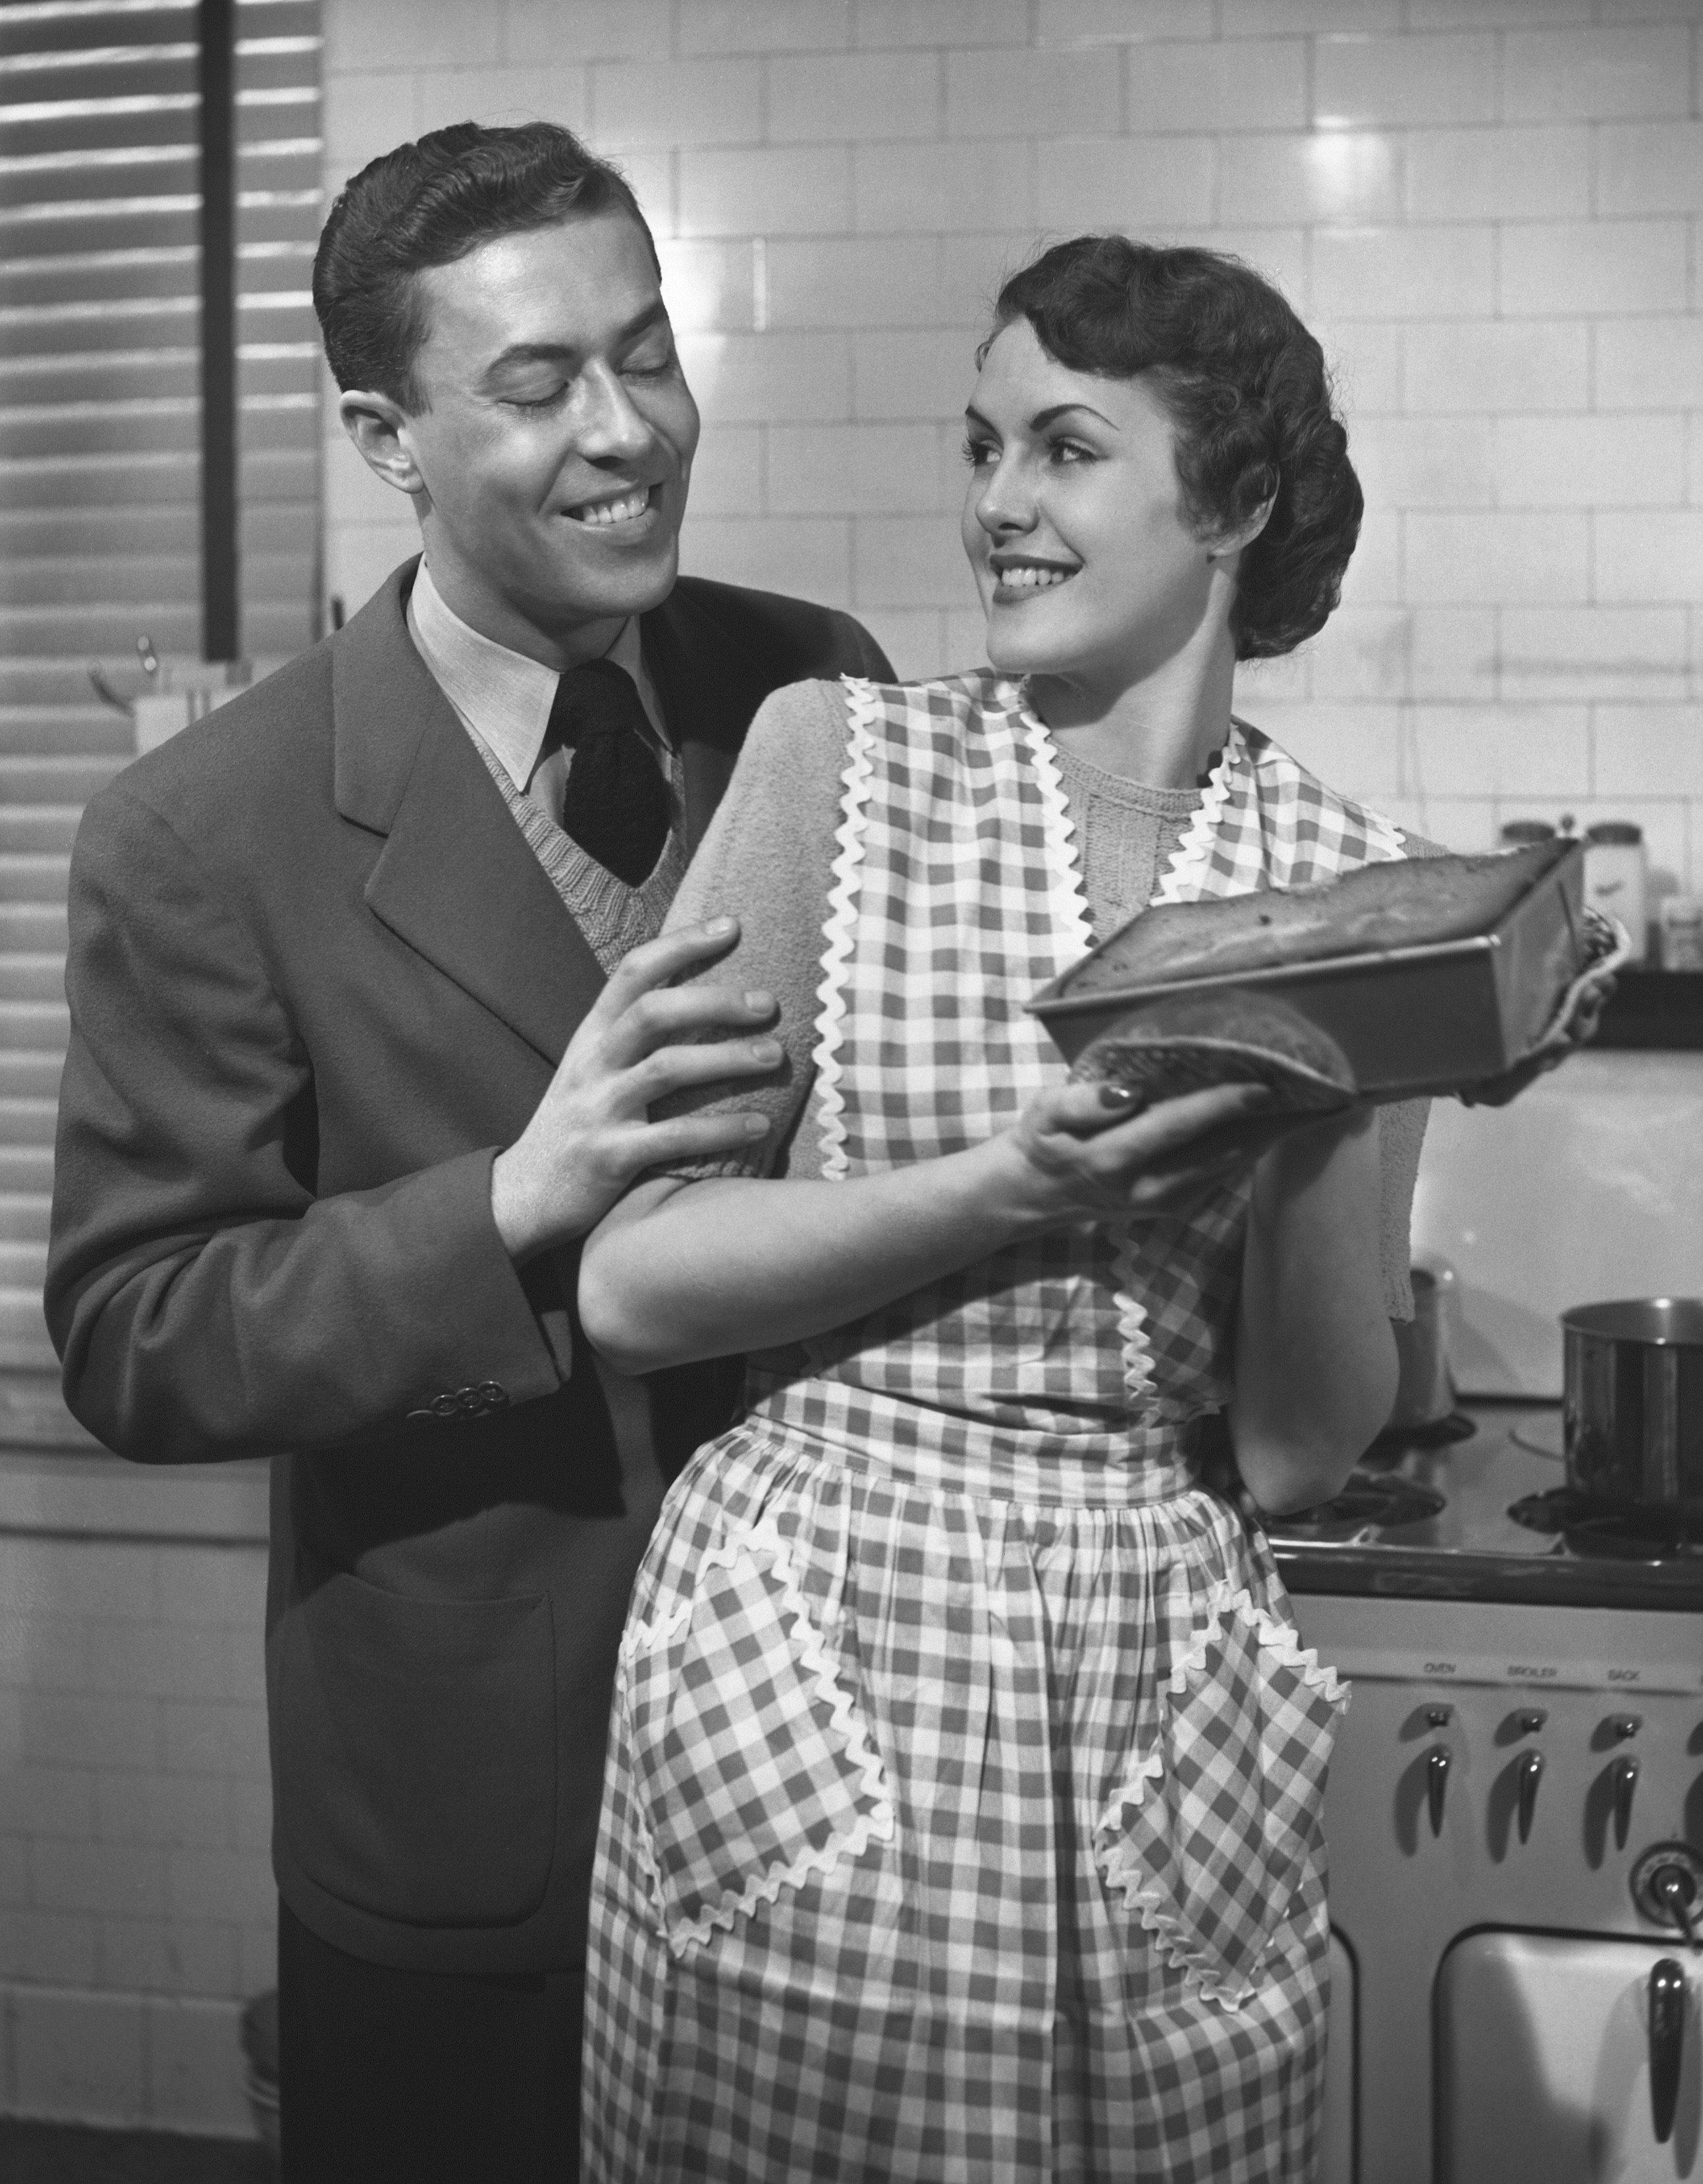 A couple shacking up in the 50s.